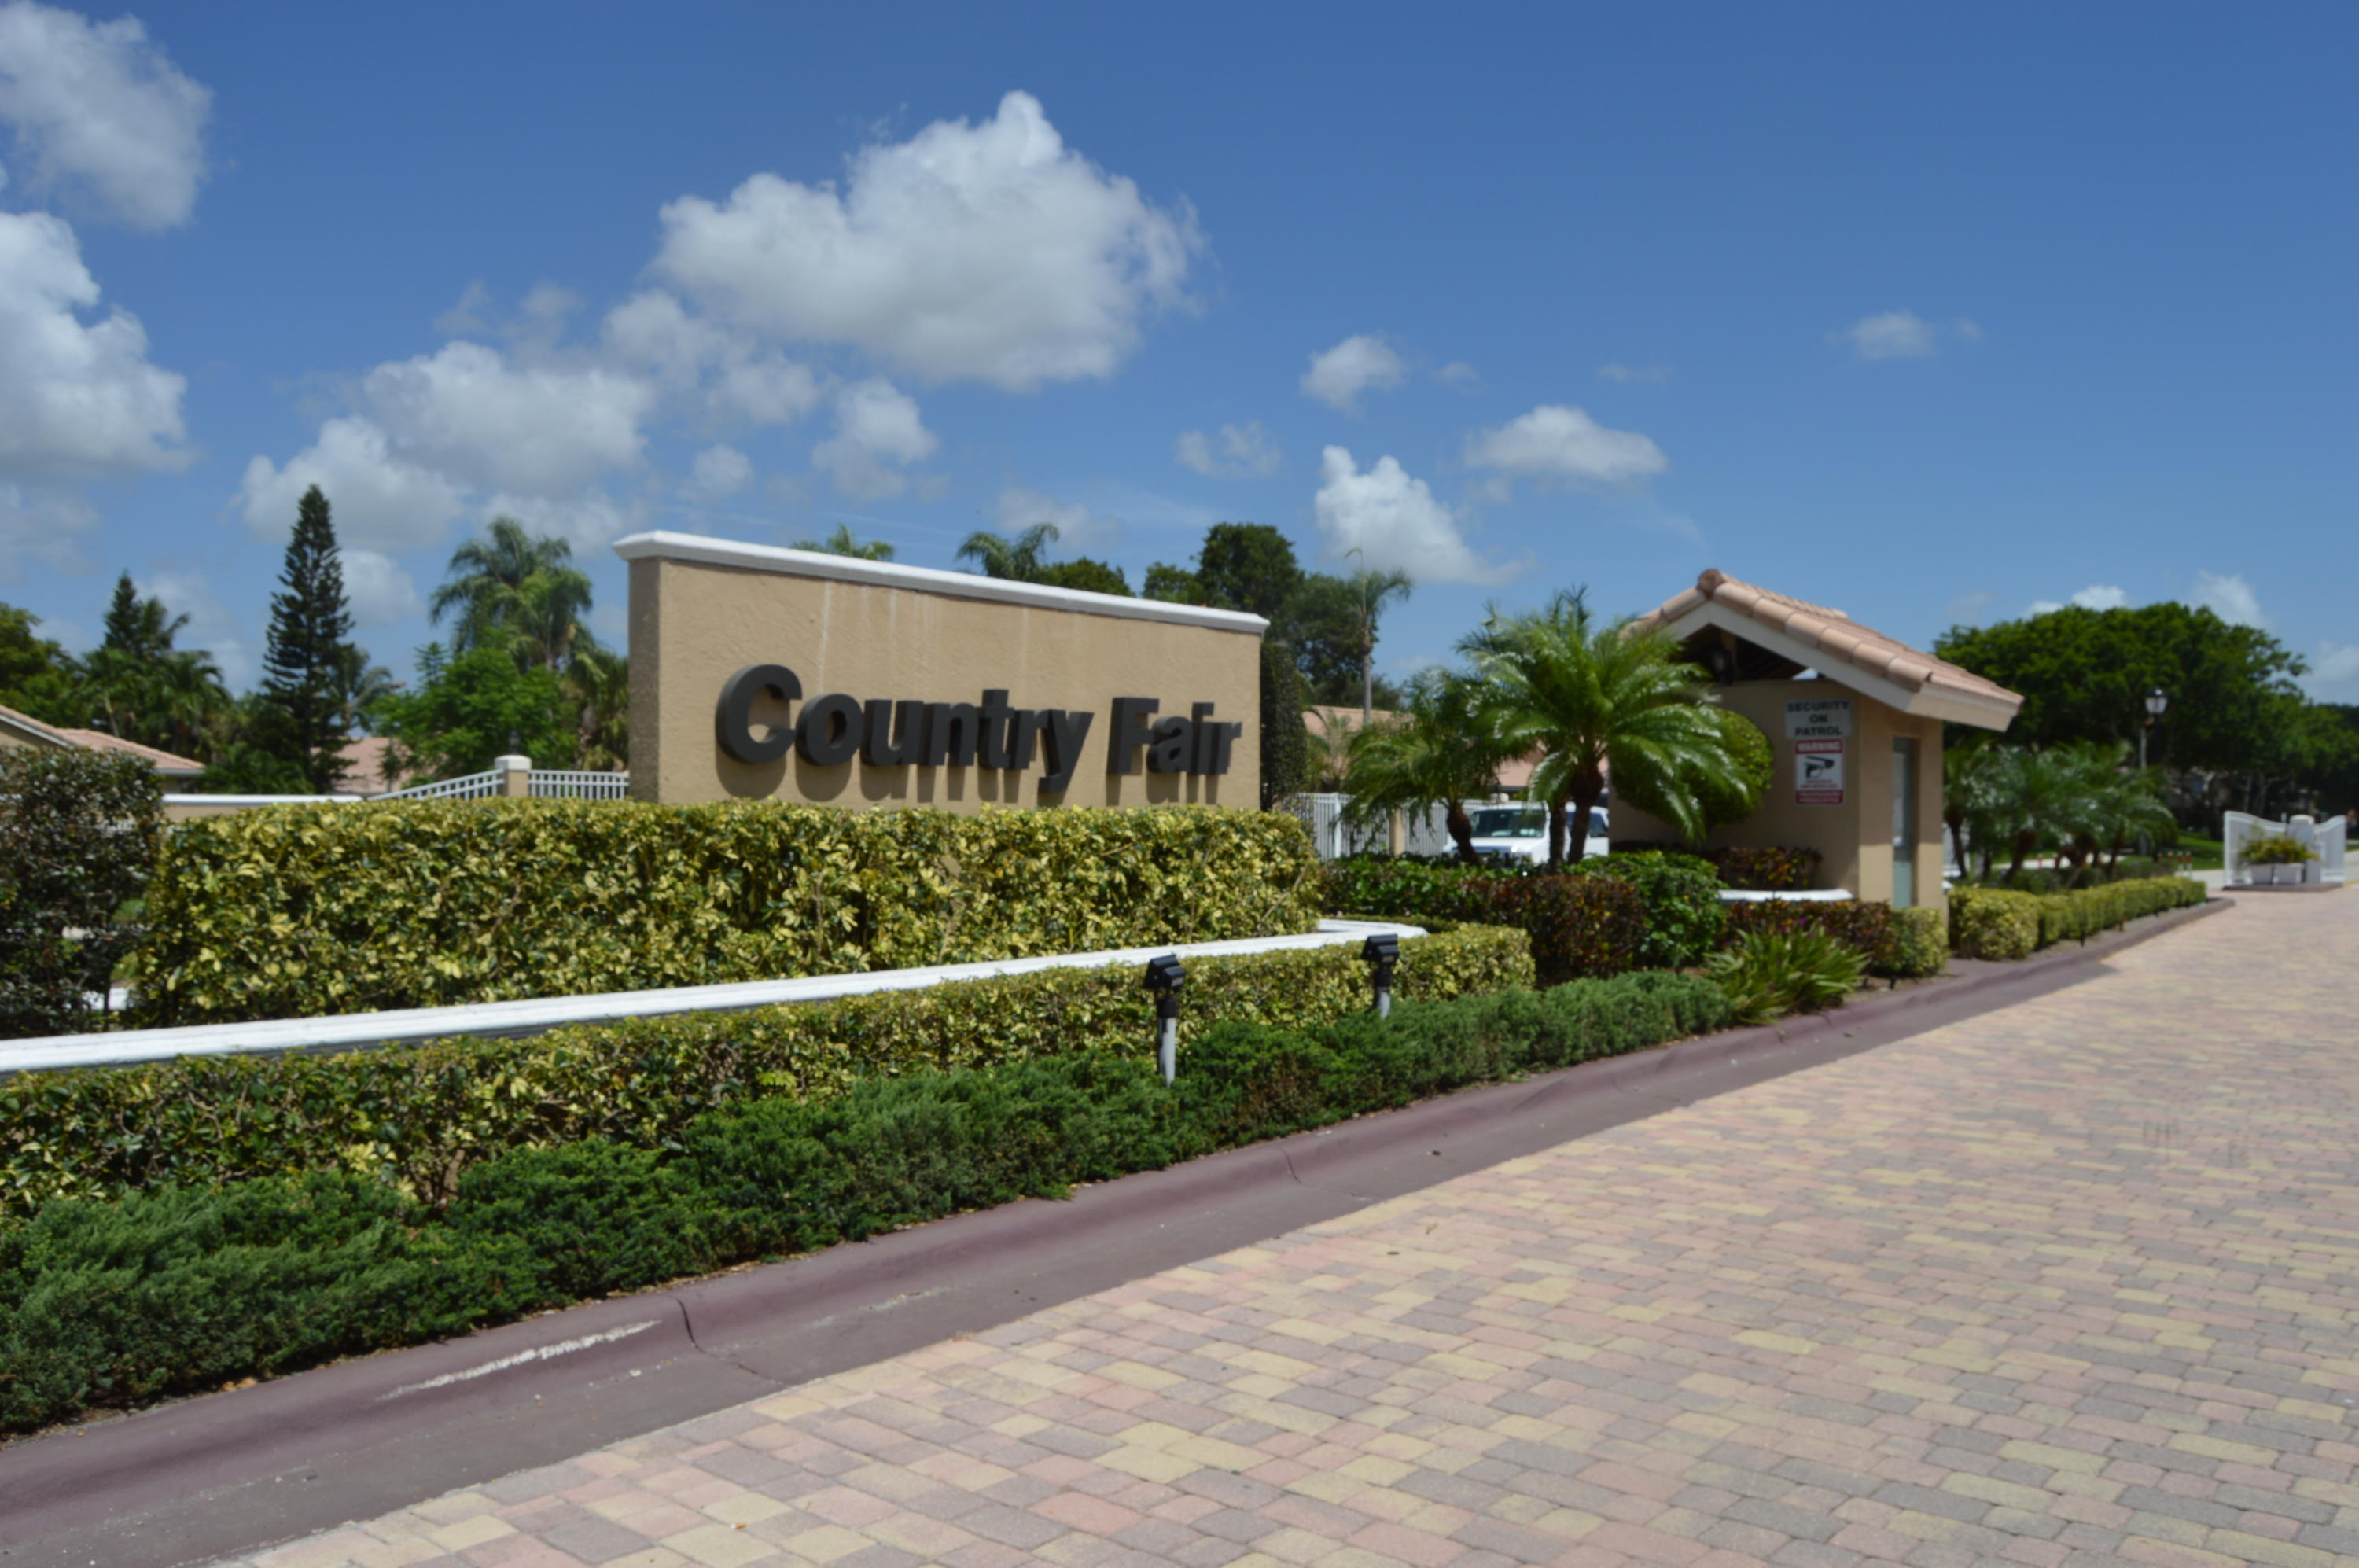 6397 Country Fair Circle, Boynton Beach, FL 33437